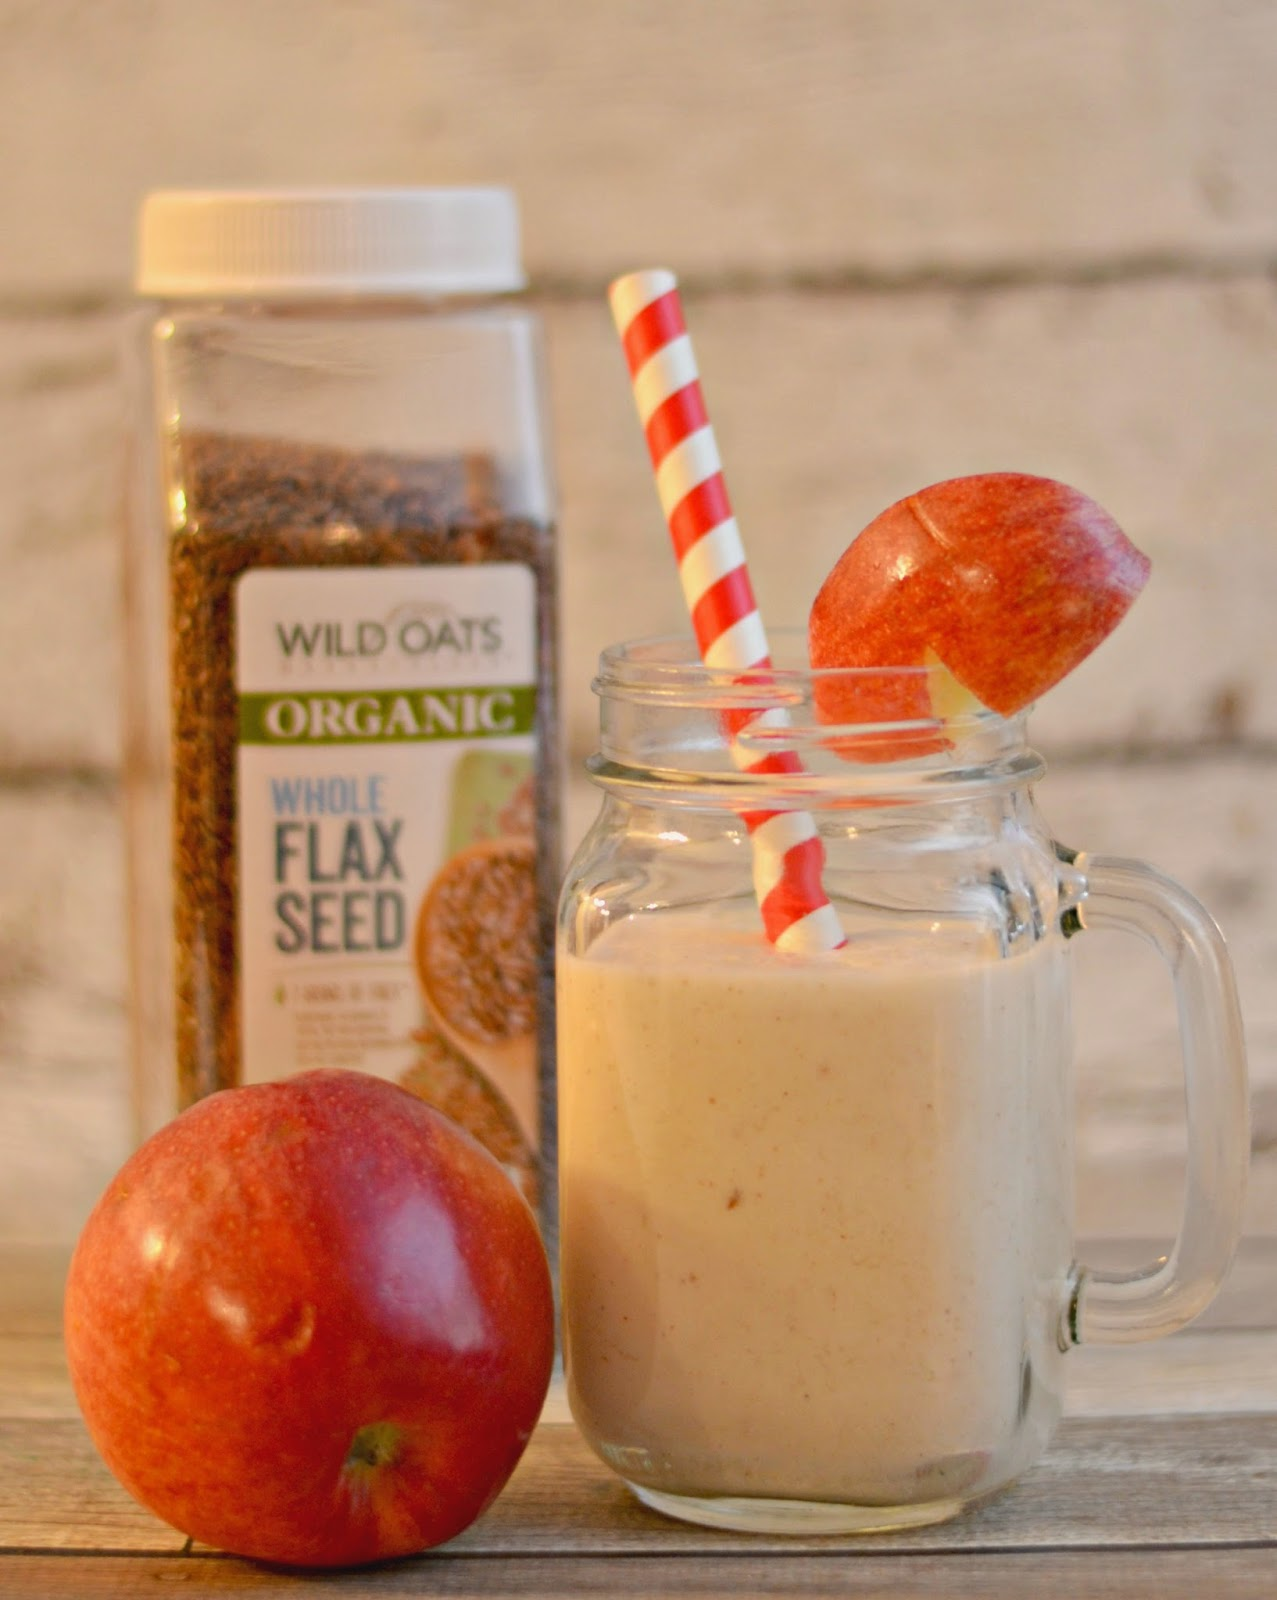 Apple Pie Smoothie.  Applesauce smoothie.  Smoothie recipes.  Easy smoothie recipes.  Smoothies made with applesauce.  Apple smoothies.